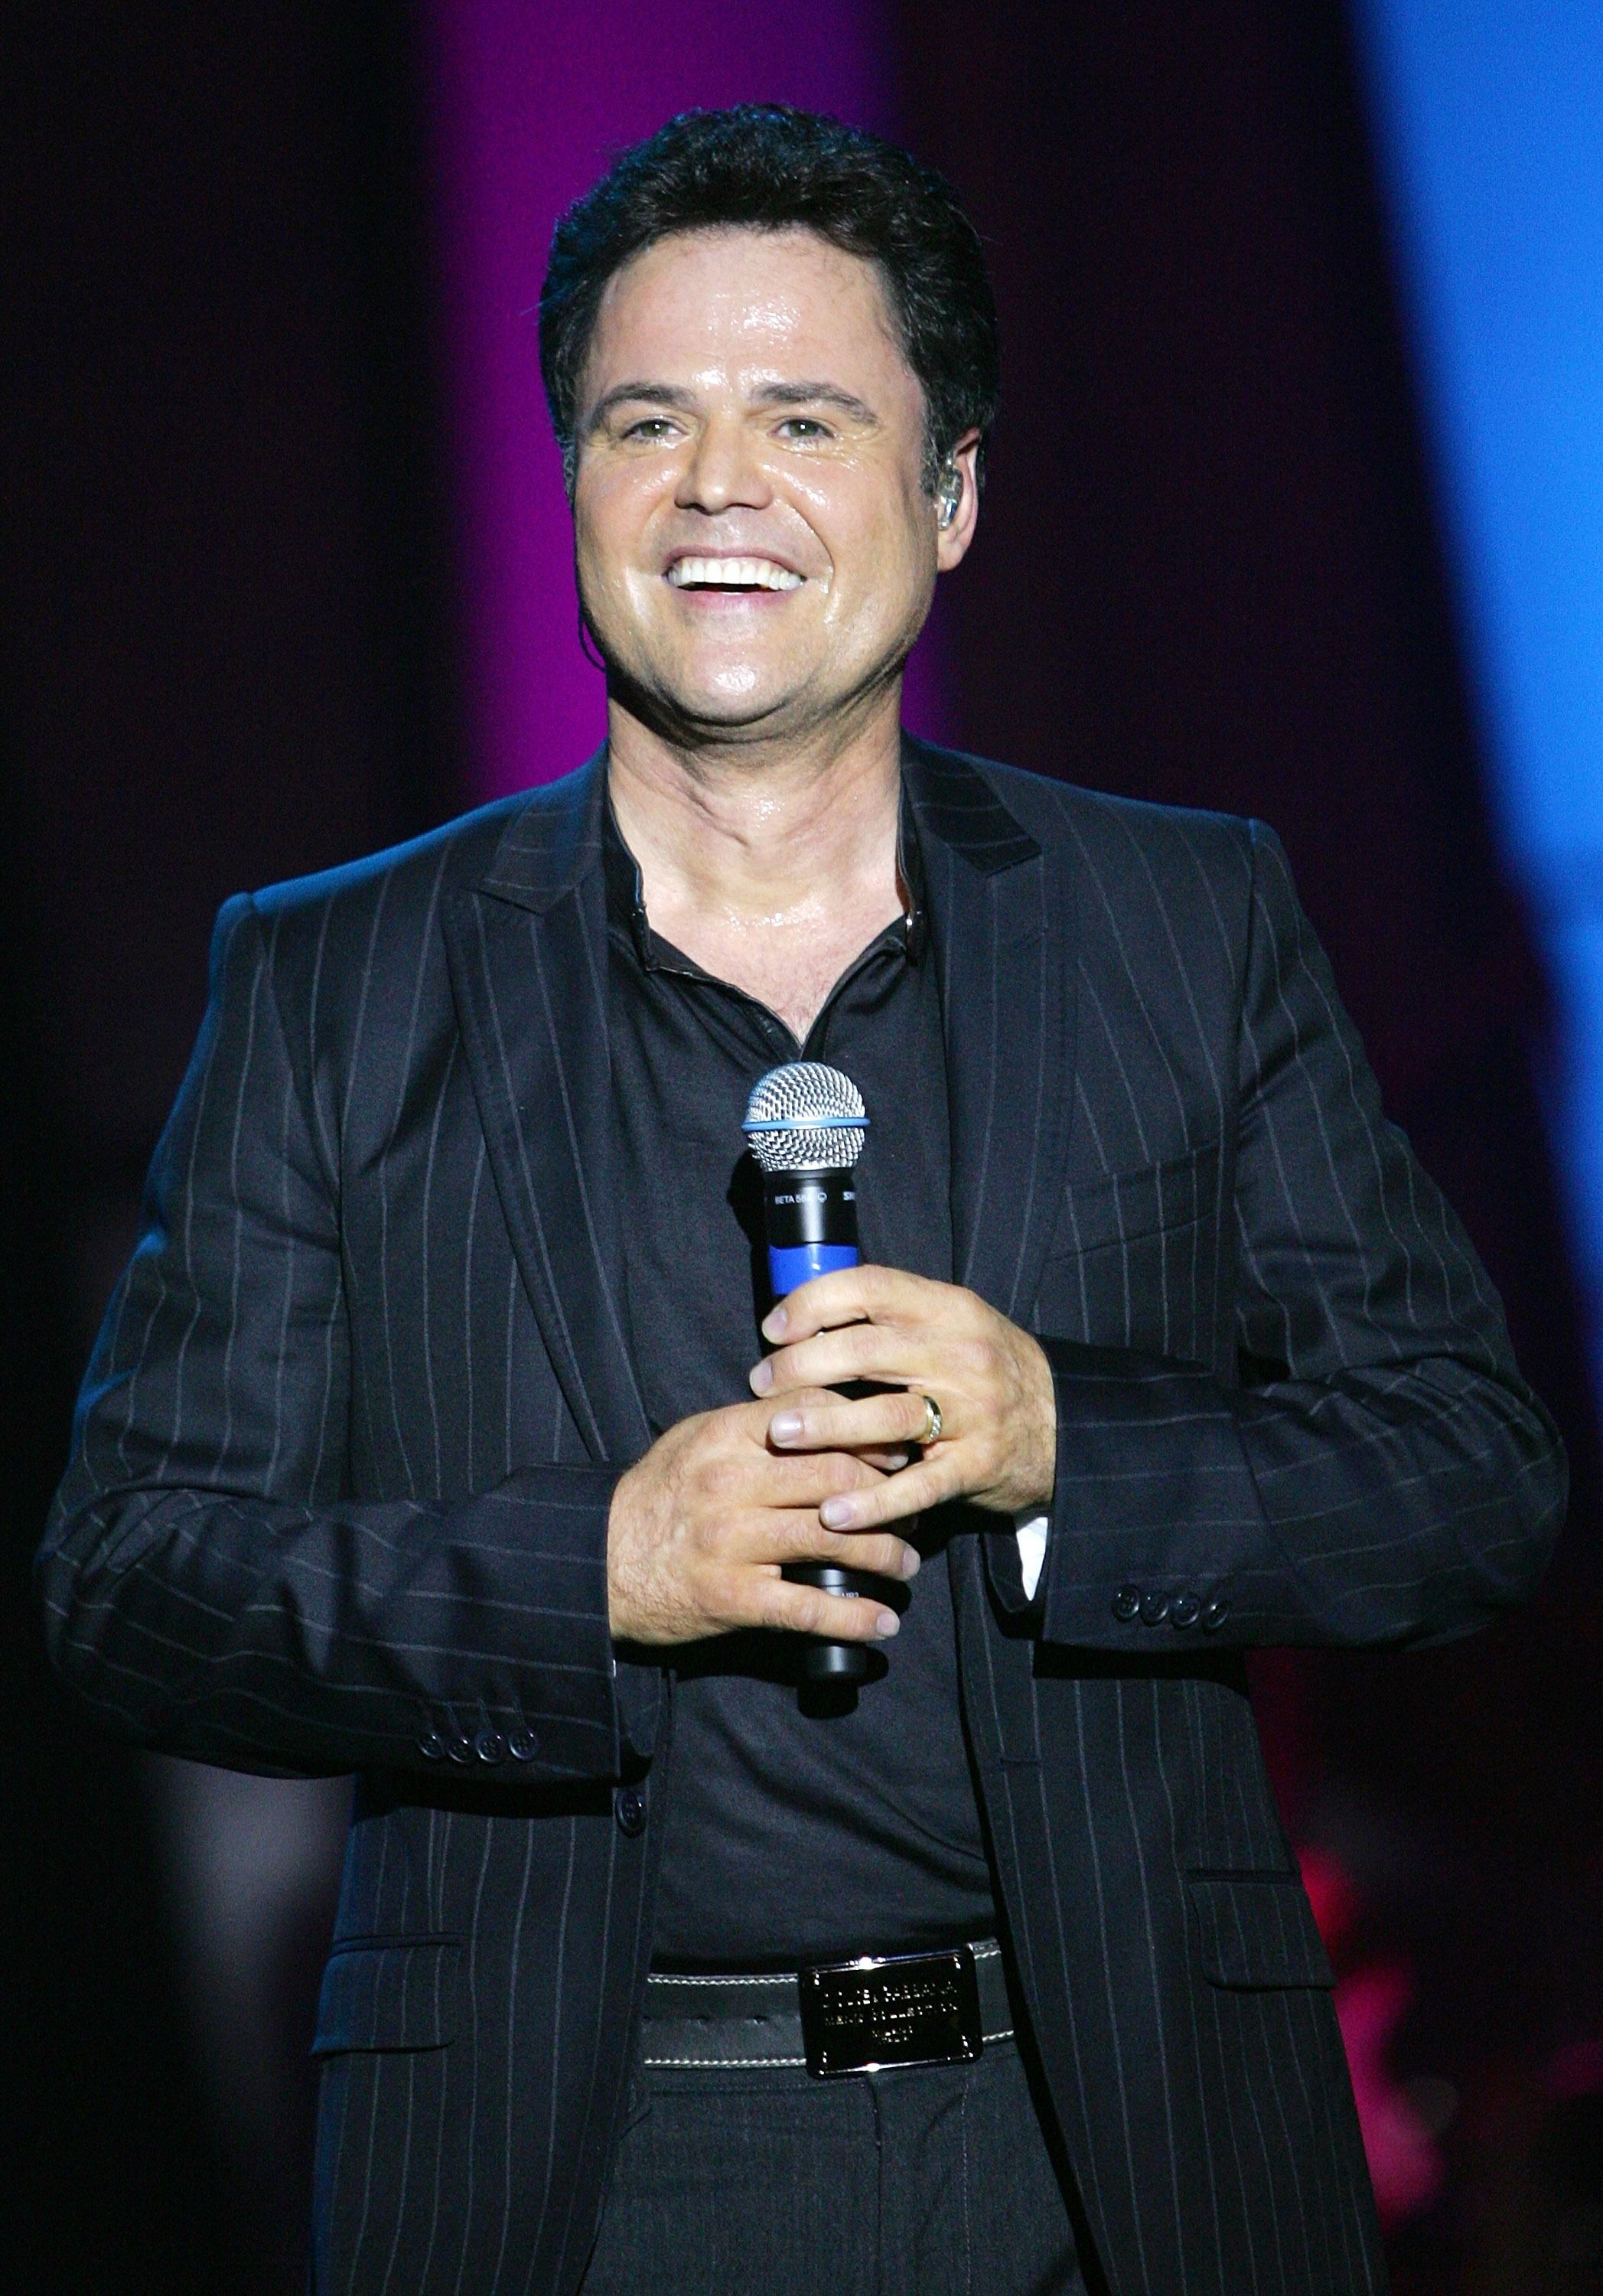 Donny Osmond performs at the Orleans Hotel & Casino on August 14, 2007, in Las Vegas, Nevada | Photo: Ethan Miller/Getty Images